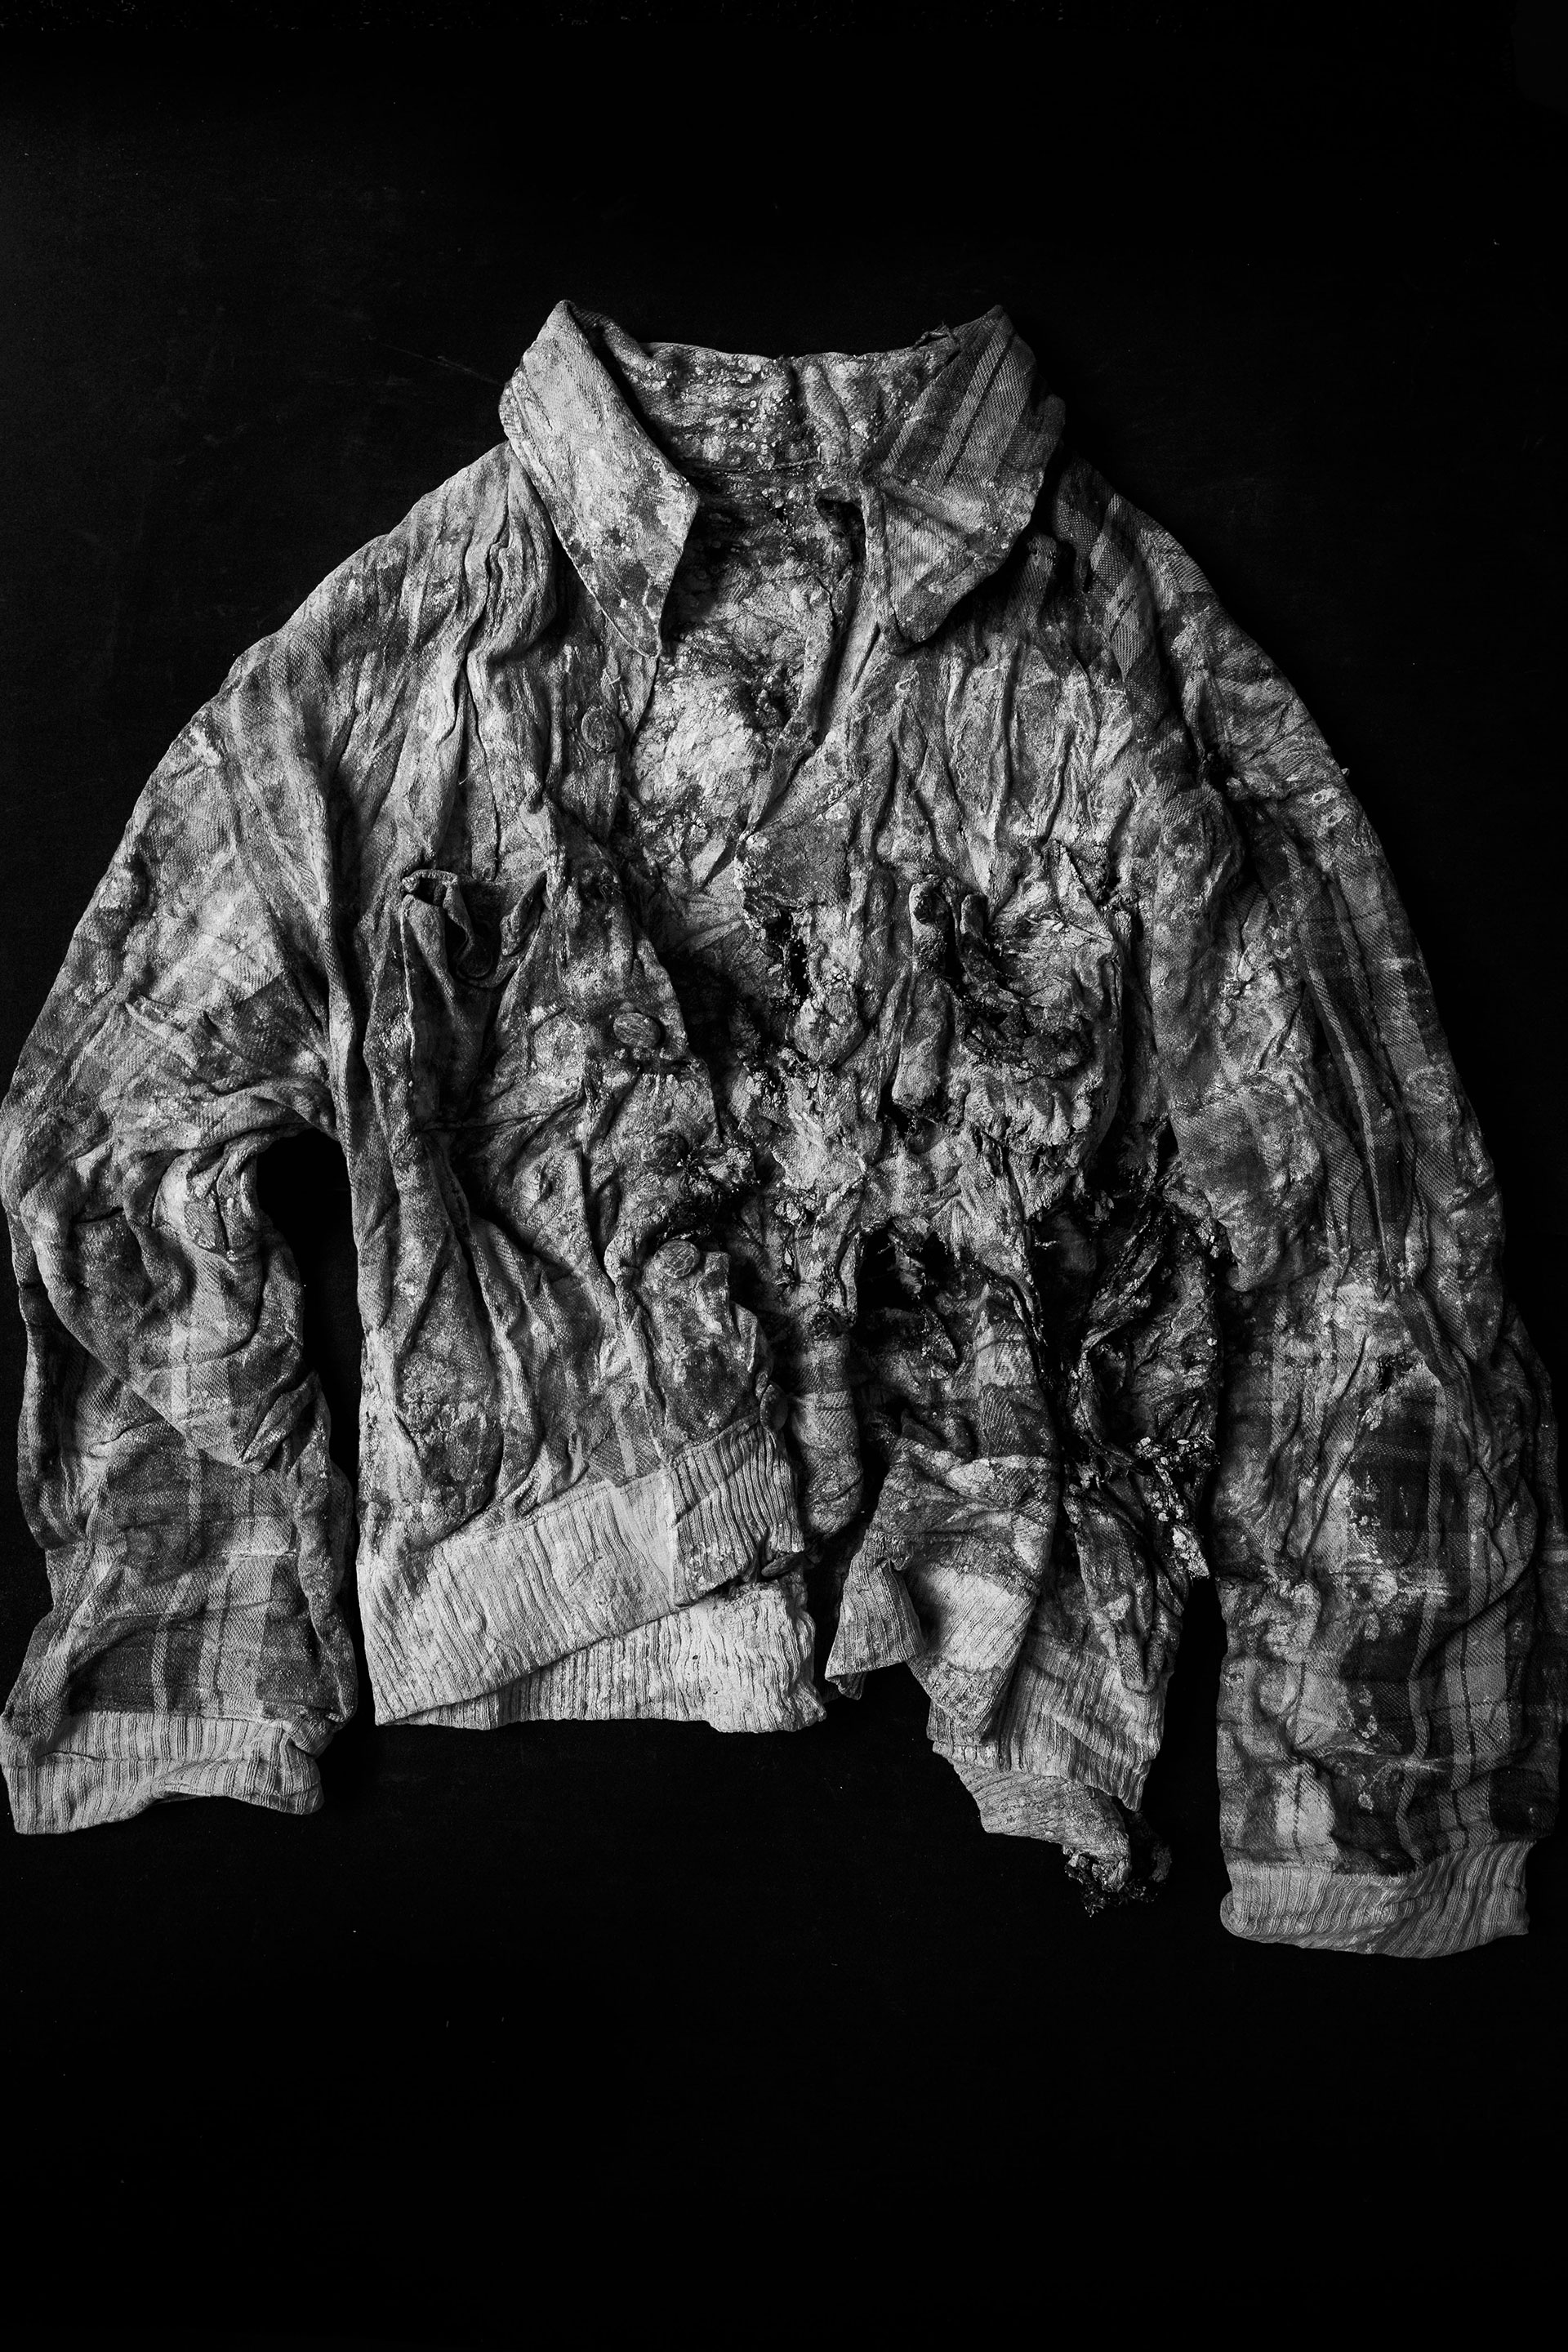 A jacket found in mass grave number 128 in Paterna, Valencia in May 2019. The garment belonged to a person killed by several gunshots in 1941.